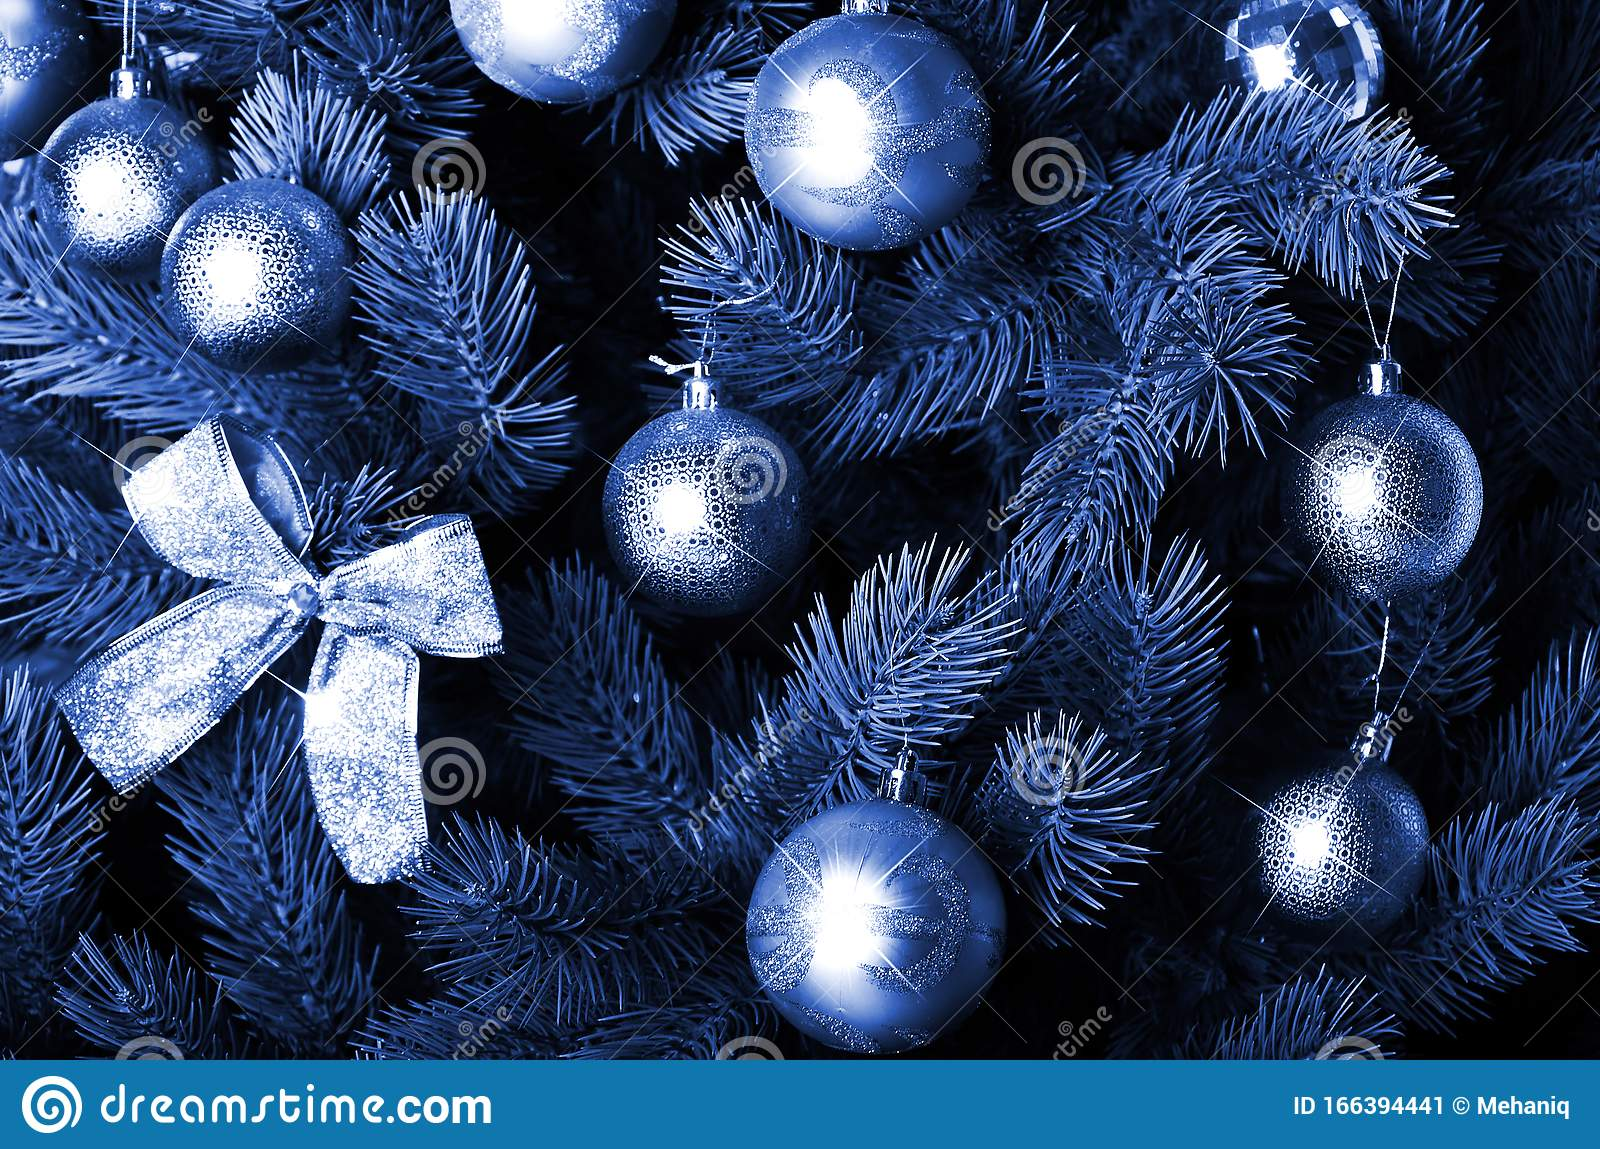 Detailed Photo Of The Christmas Tree Phantom Classic Blue Color Stock Image Image Of Nature Holiday 166394441